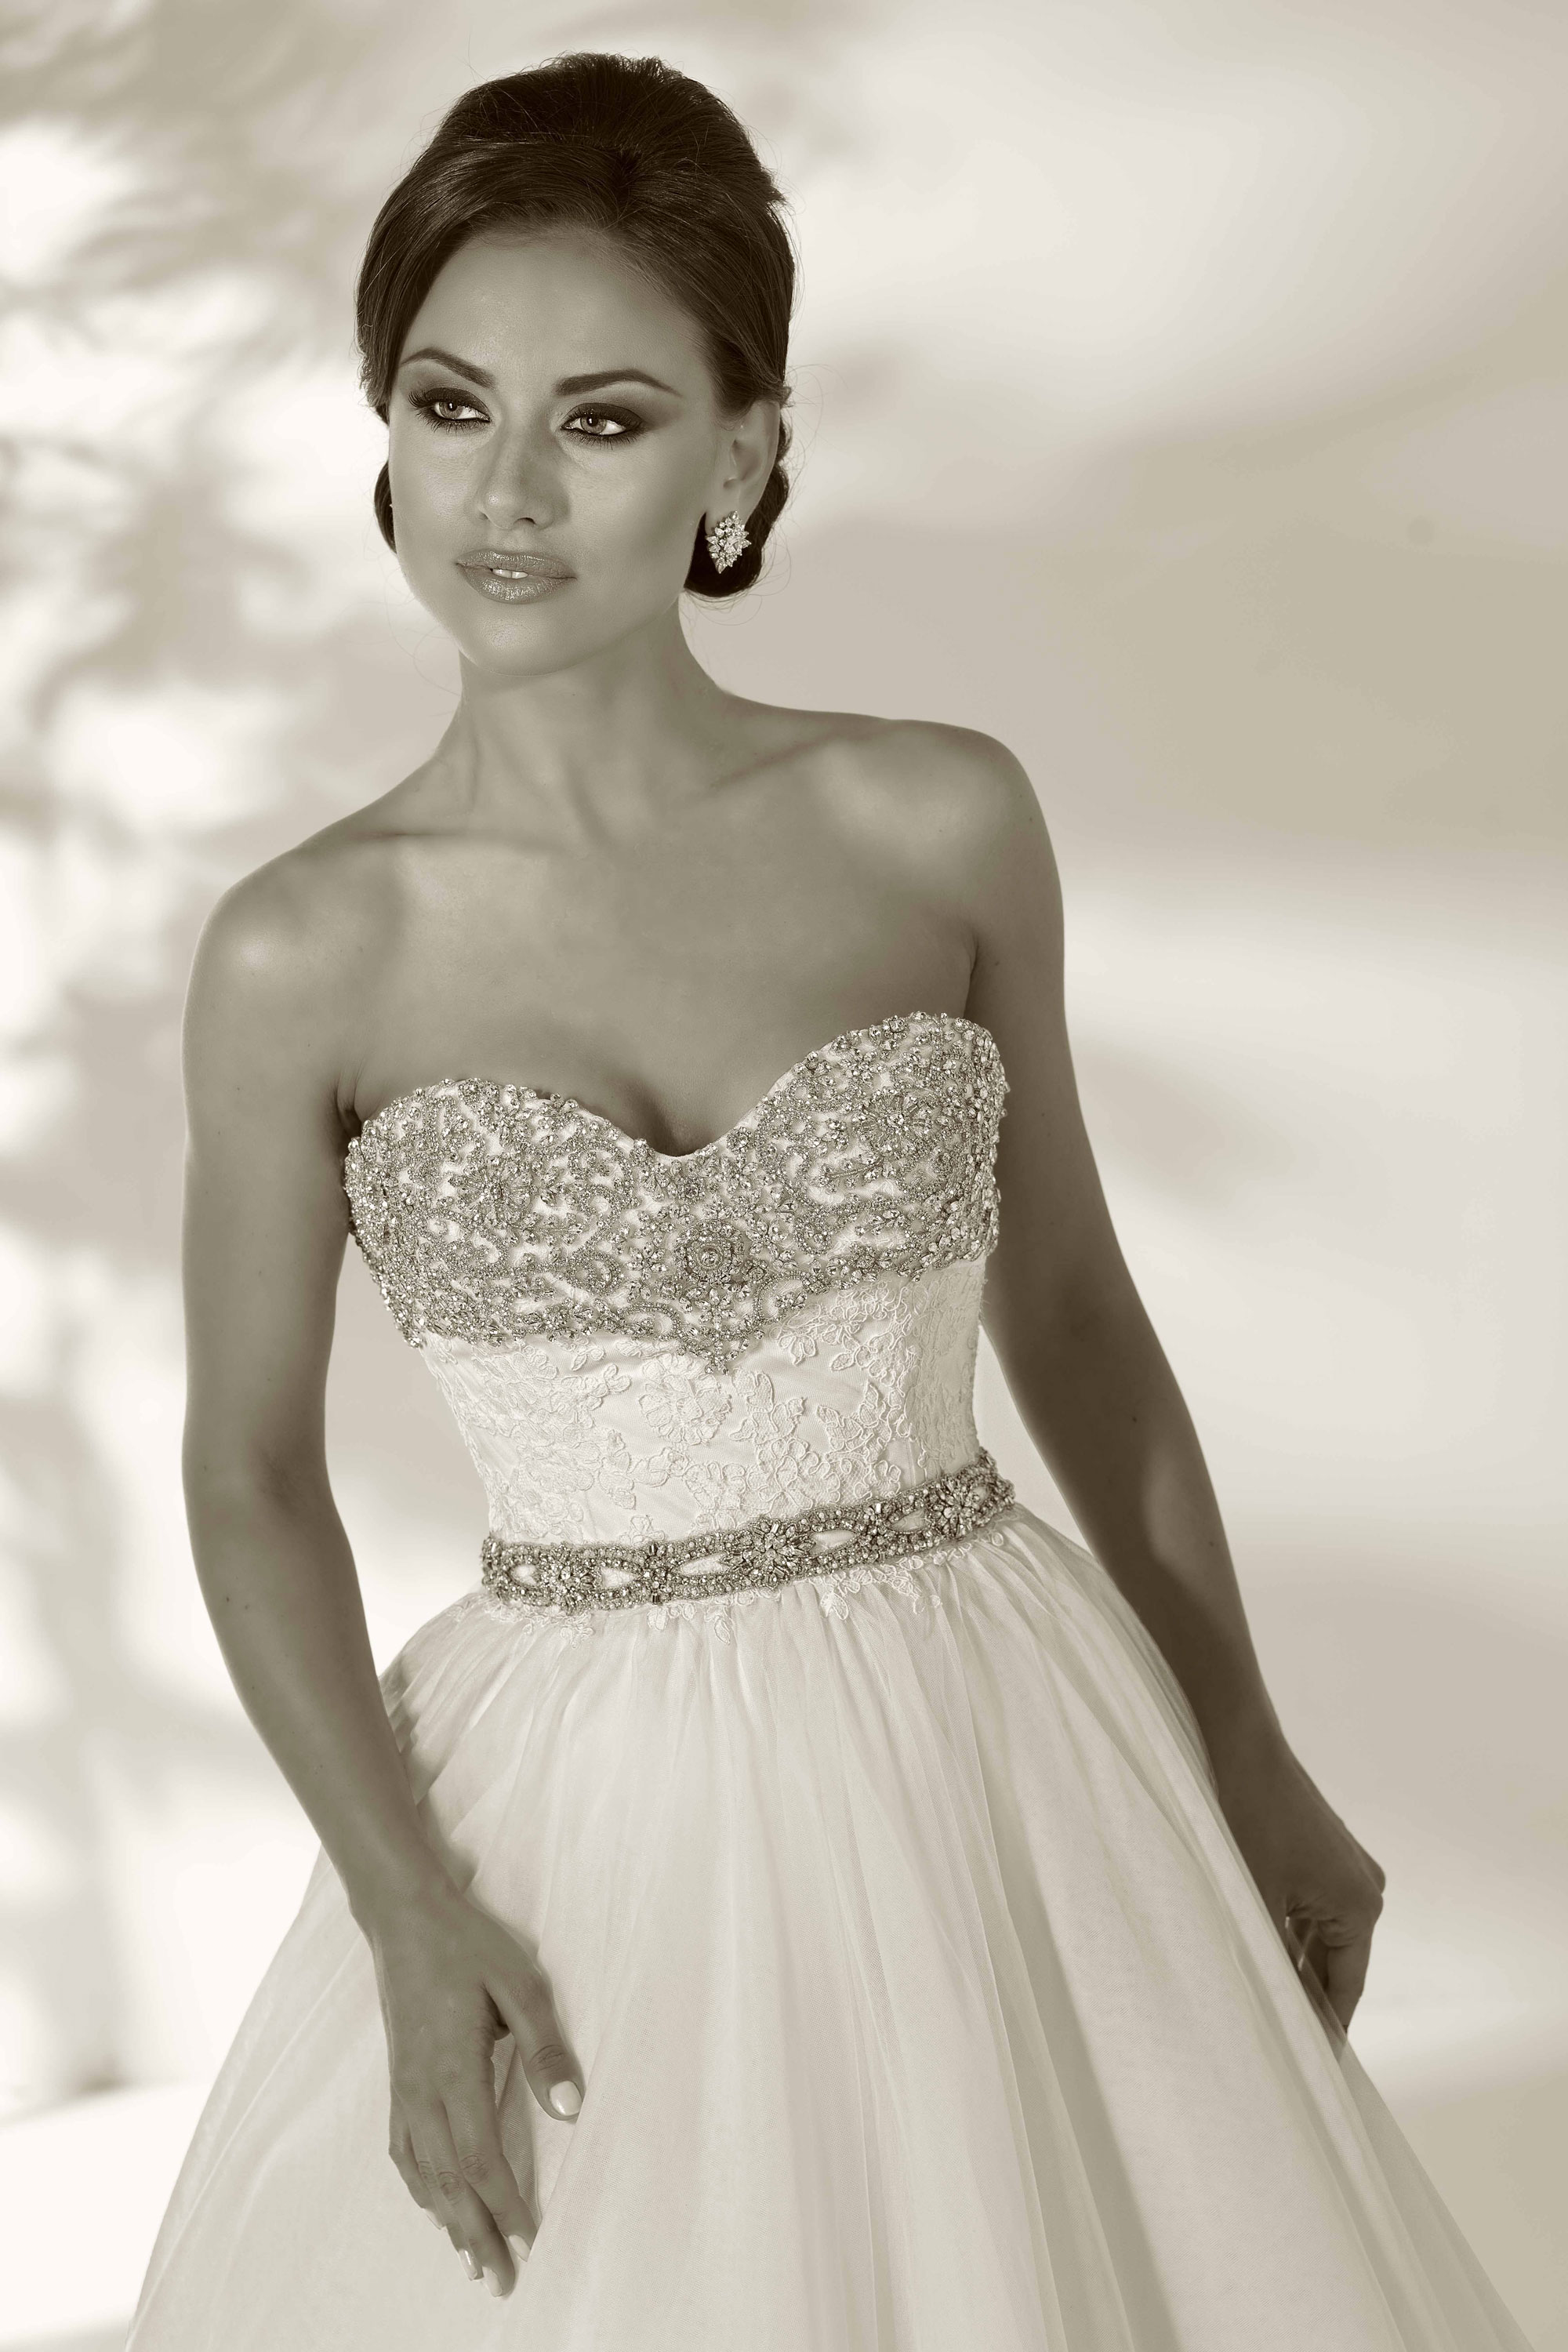 cristiano-lucci-wedding-dresses-1-01052014